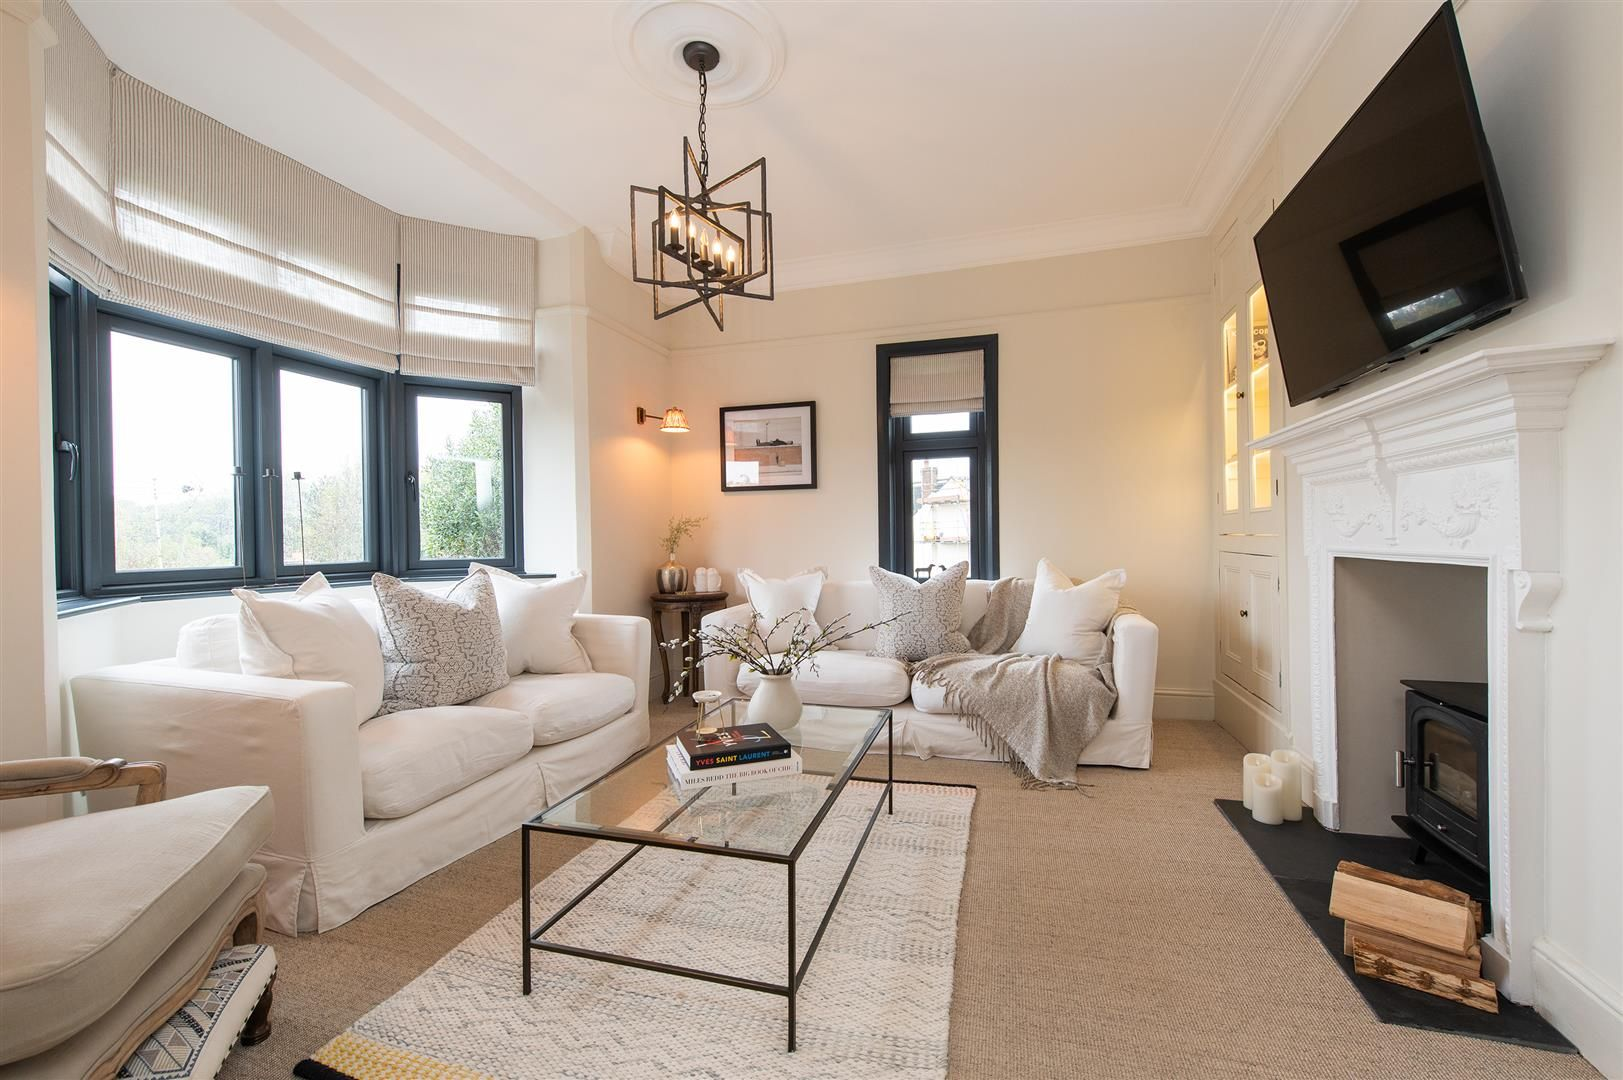 4 bed house for sale in Kinver  - Property Image 6